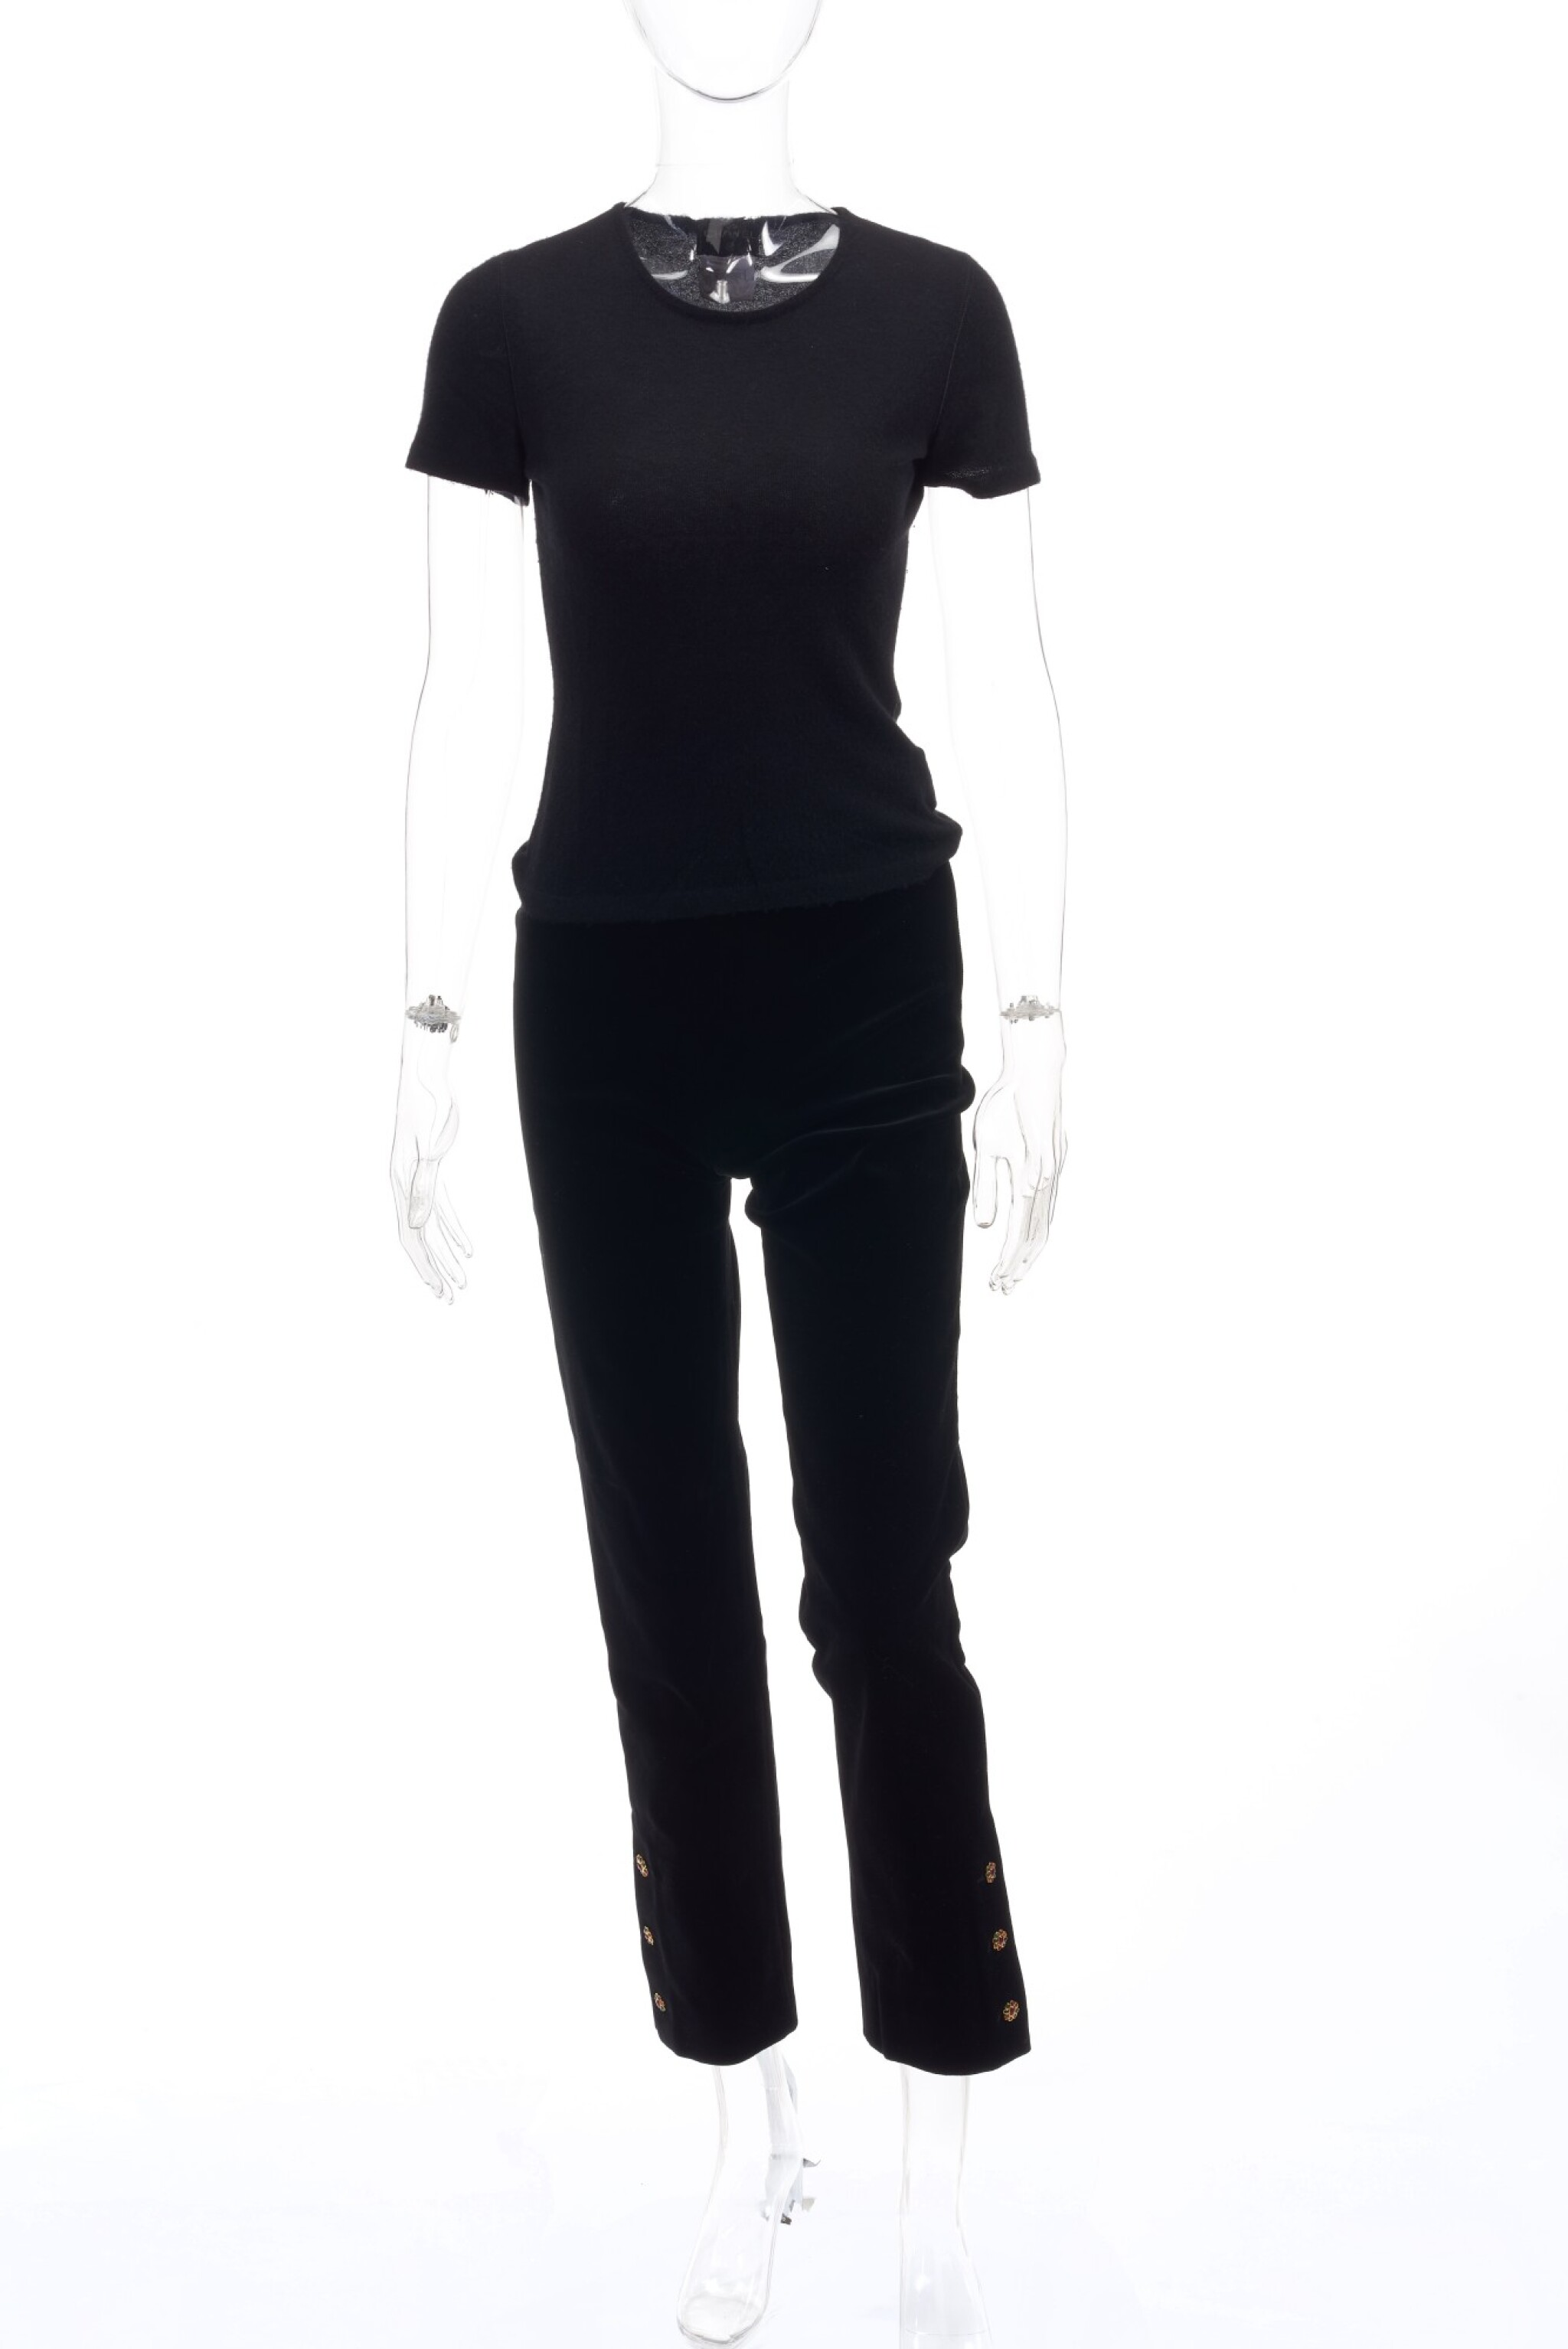 Black cashmere sweater and black velvet trousers